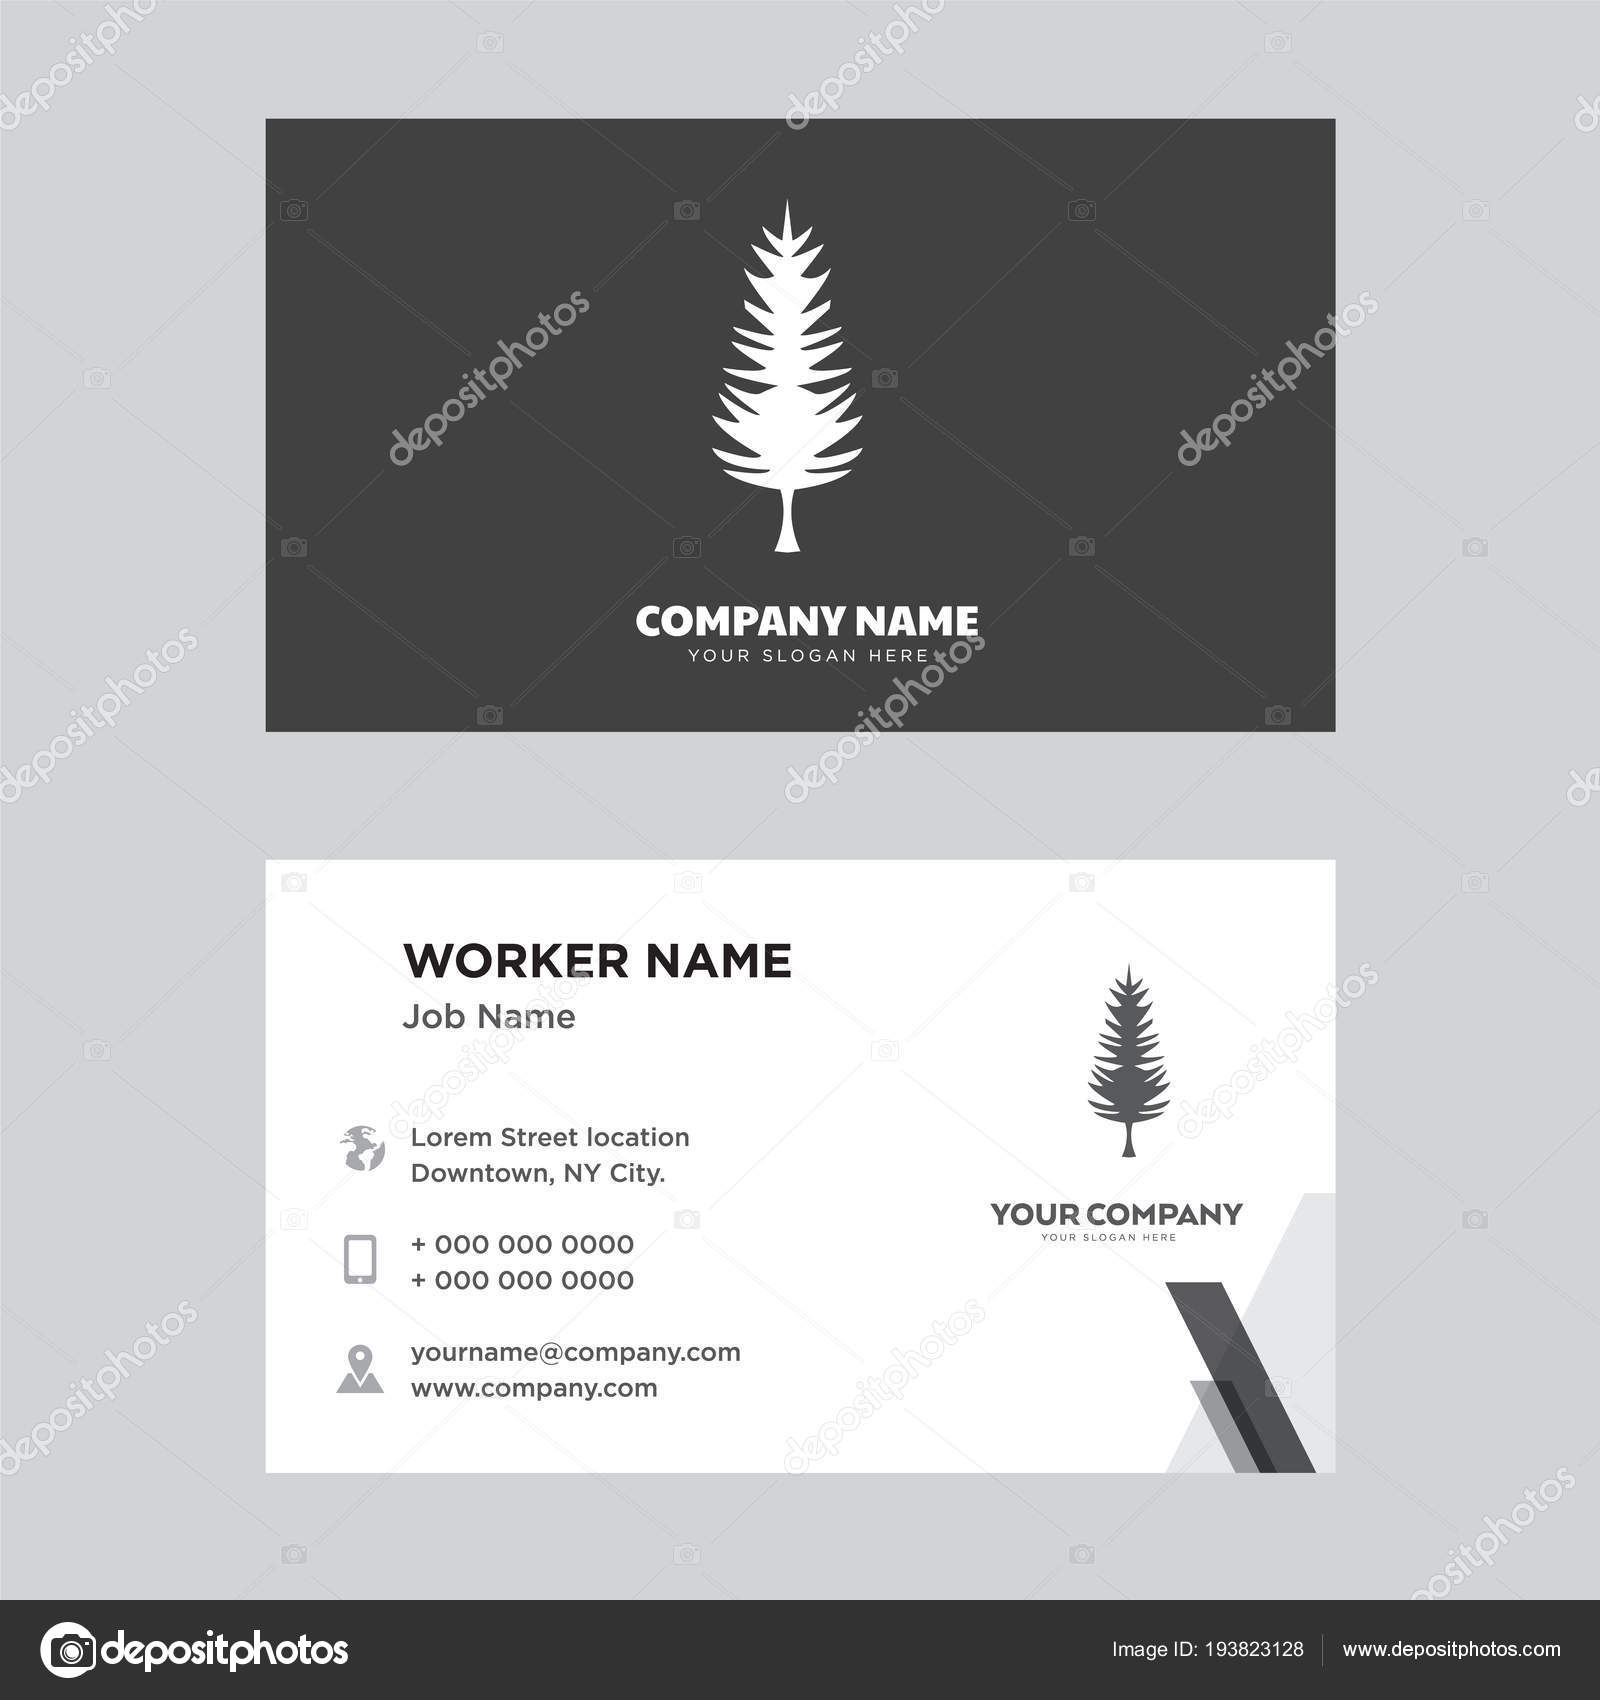 Tall pine tree business card design stock vector vectorbest tall pine tree business card design stock vector colourmoves